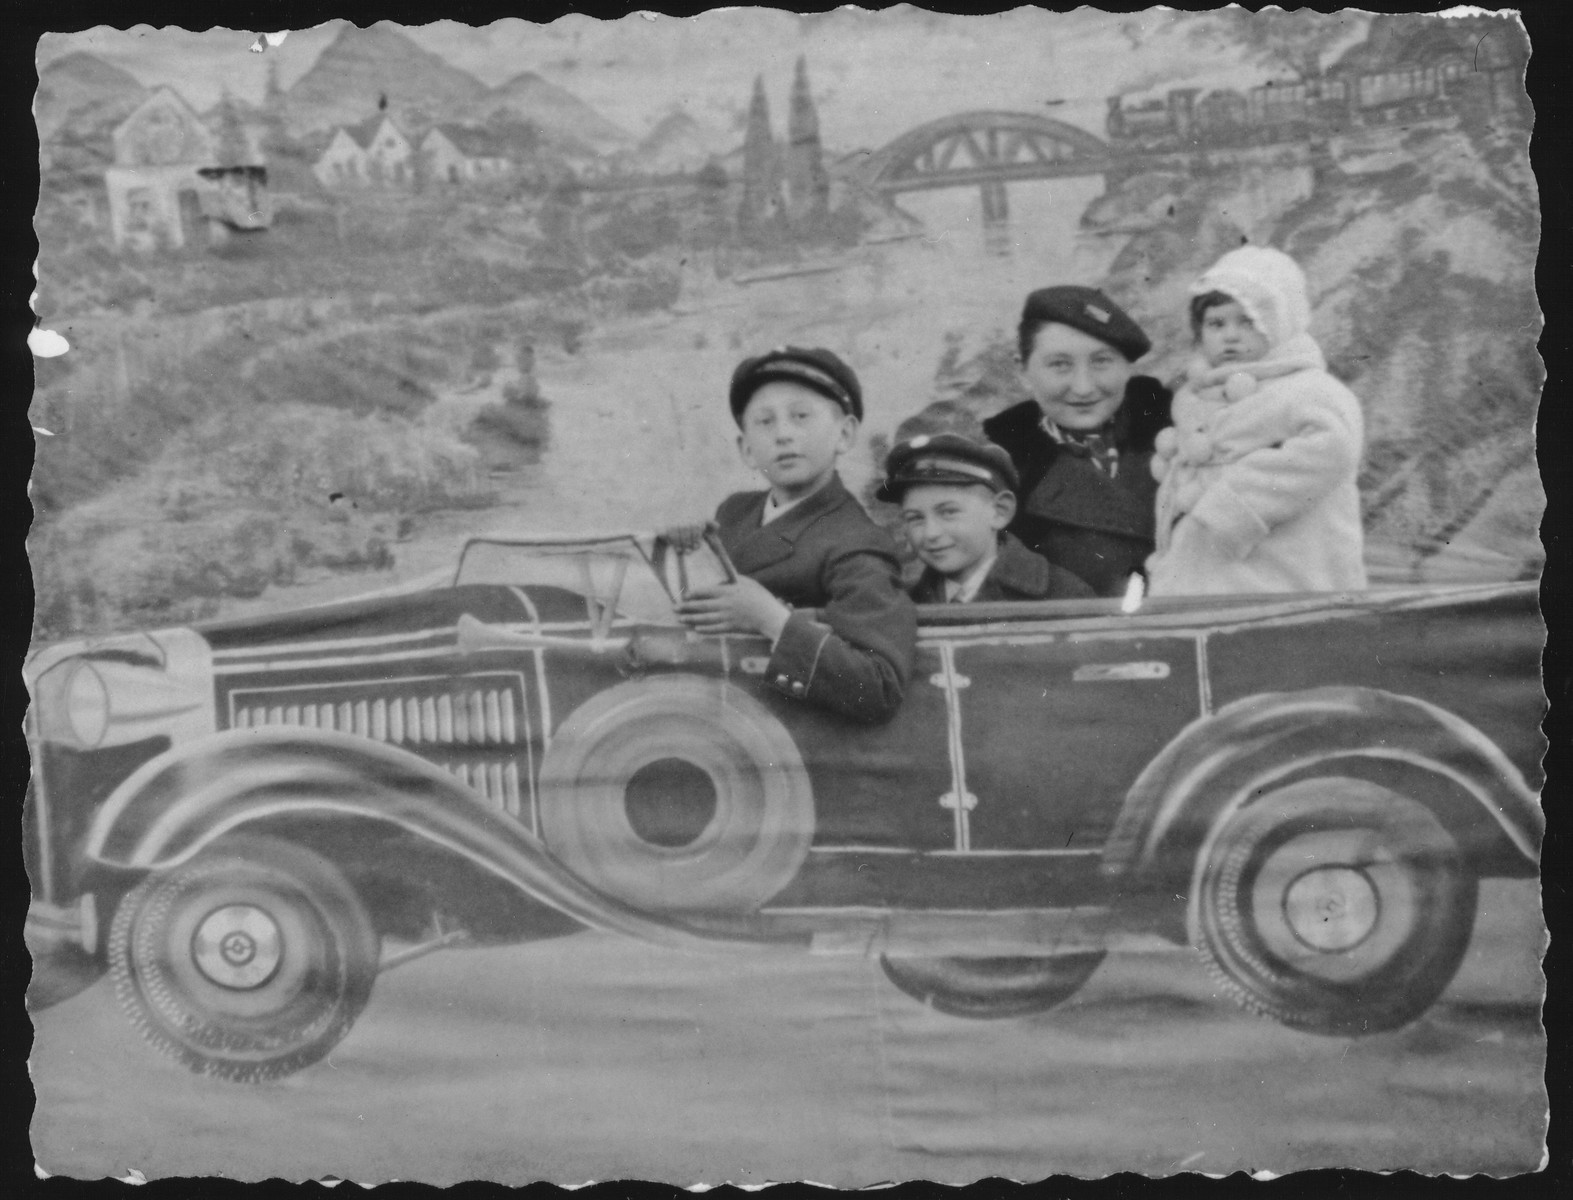 Zipporah (Katz) Sonenson poses with her younger brother and her two children against a backdrop of a sports car in the photo studio owned by her parents, Yitzhak and Alte Katz in Eisiskes.  Pictured from left to right are: Avigdor Katz, Yitzhak Uri Sonenson, Zipporah (Katz) Sonenson and Yaffa Sonenson.  After the paving of the Pilsudski Highway, to own or ride in a car became the aspiration of the younger generation in Eisiskes.  In the 1930s the sports car was the most popular backdrop in the Katz photography studio.  Avigdor Katz was killed by the Germans during the September 1941 mass shooting action in Eisiskes.